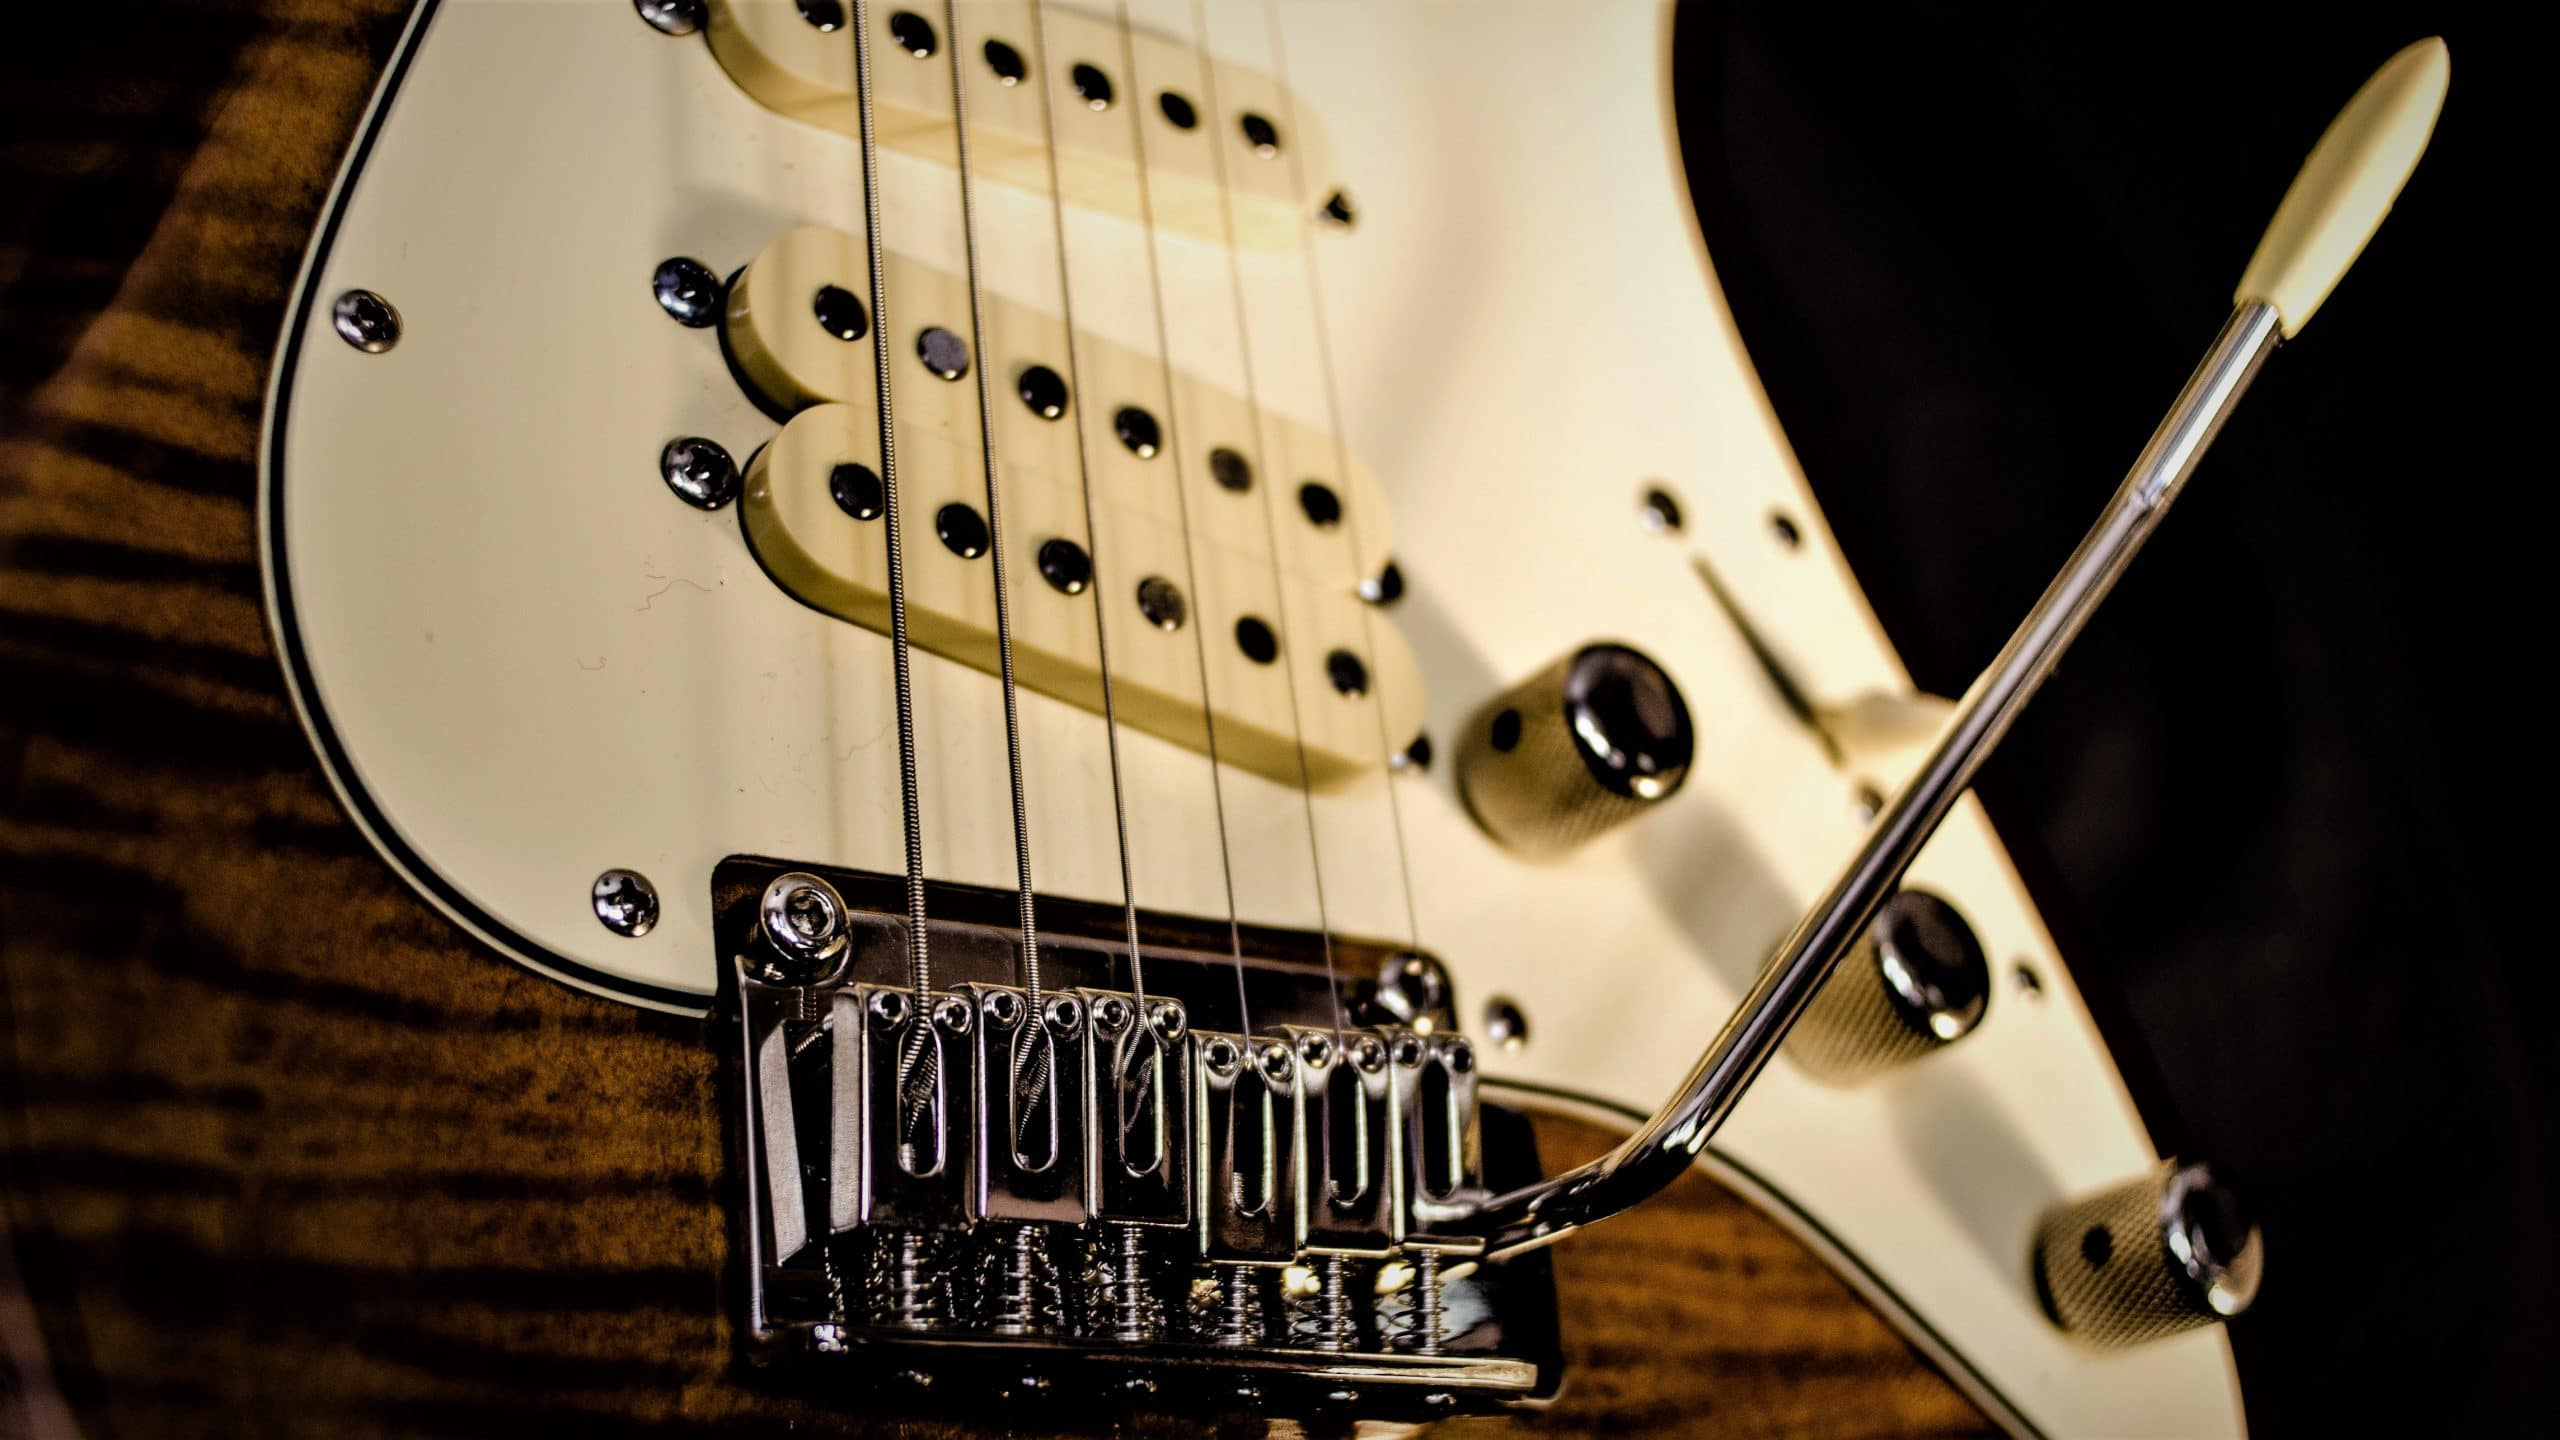 Why Are Guitar Pickups So Expensive? And Is Upgrading Pickups Worth it?